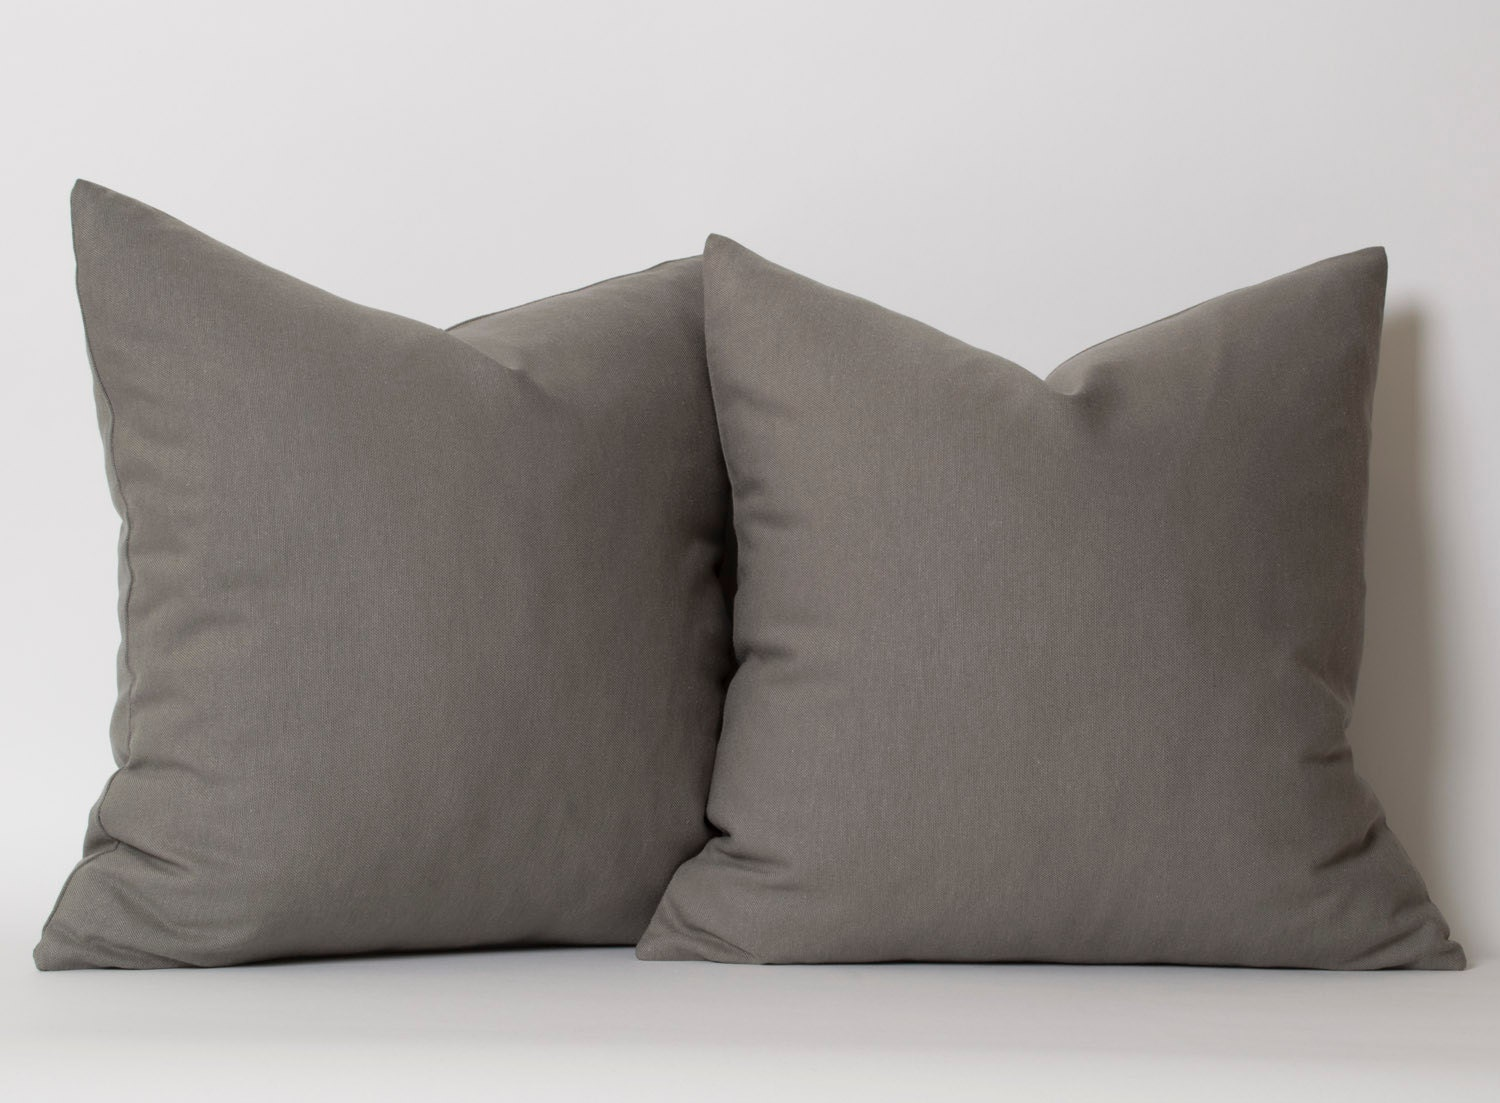 The Elegance European Pillow Sham from Austin Horn Classics offers a beautiful detail in tones of taupe and grey for an understated statement. The sophisticated piece accentuates the design's timeless style and transforms the luxurious bedding.